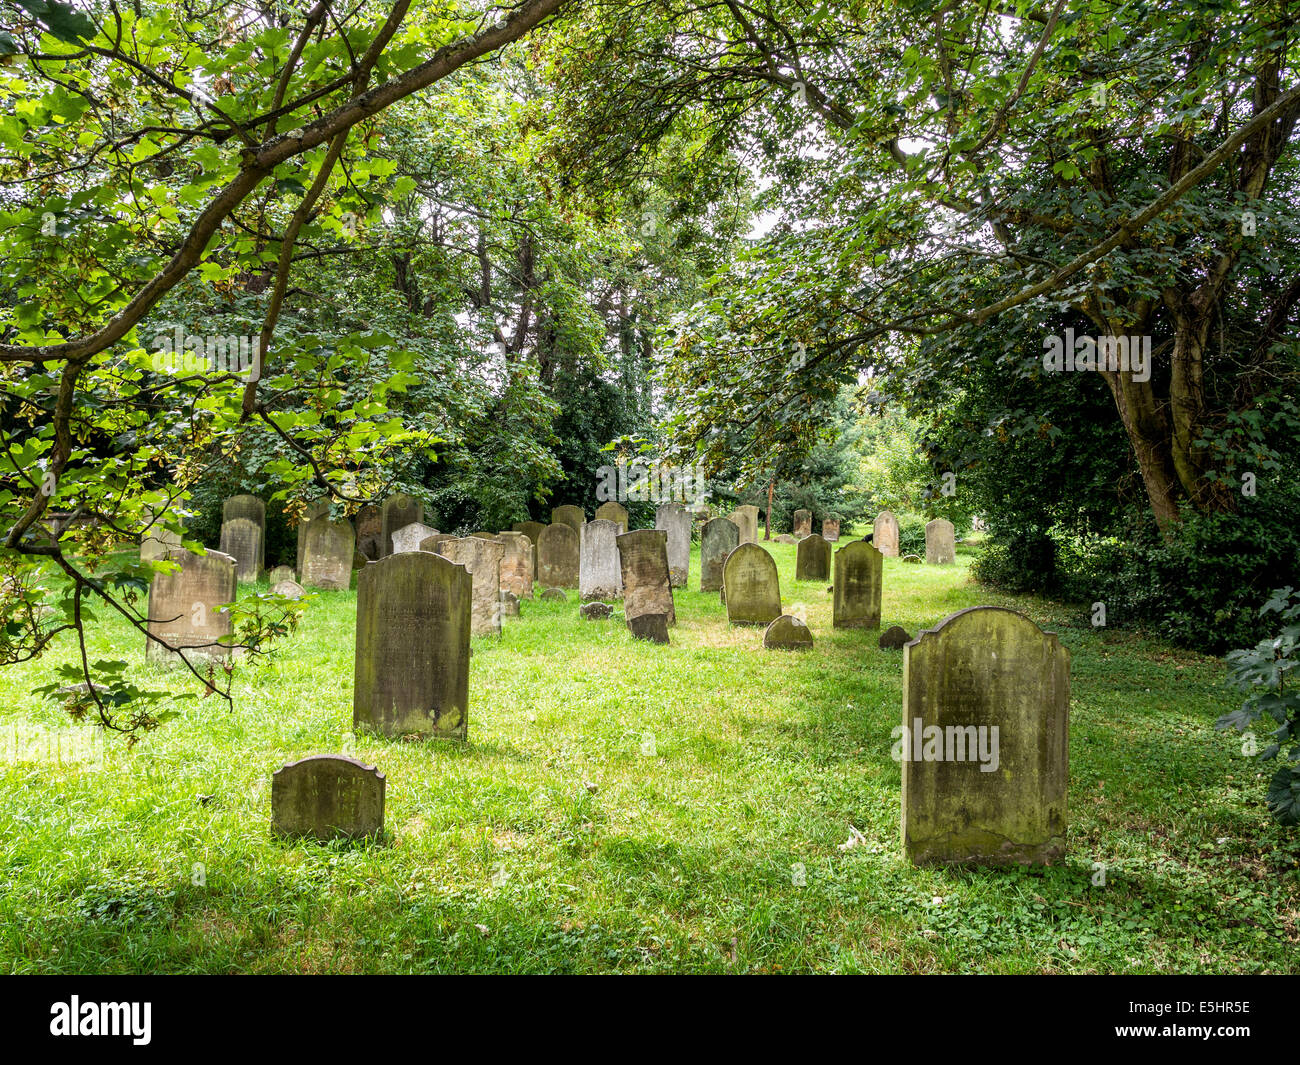 Old Cemetery and graveyard with weathered tombstones in a leafy burial ground - Twickenham, London, UK - Stock Image